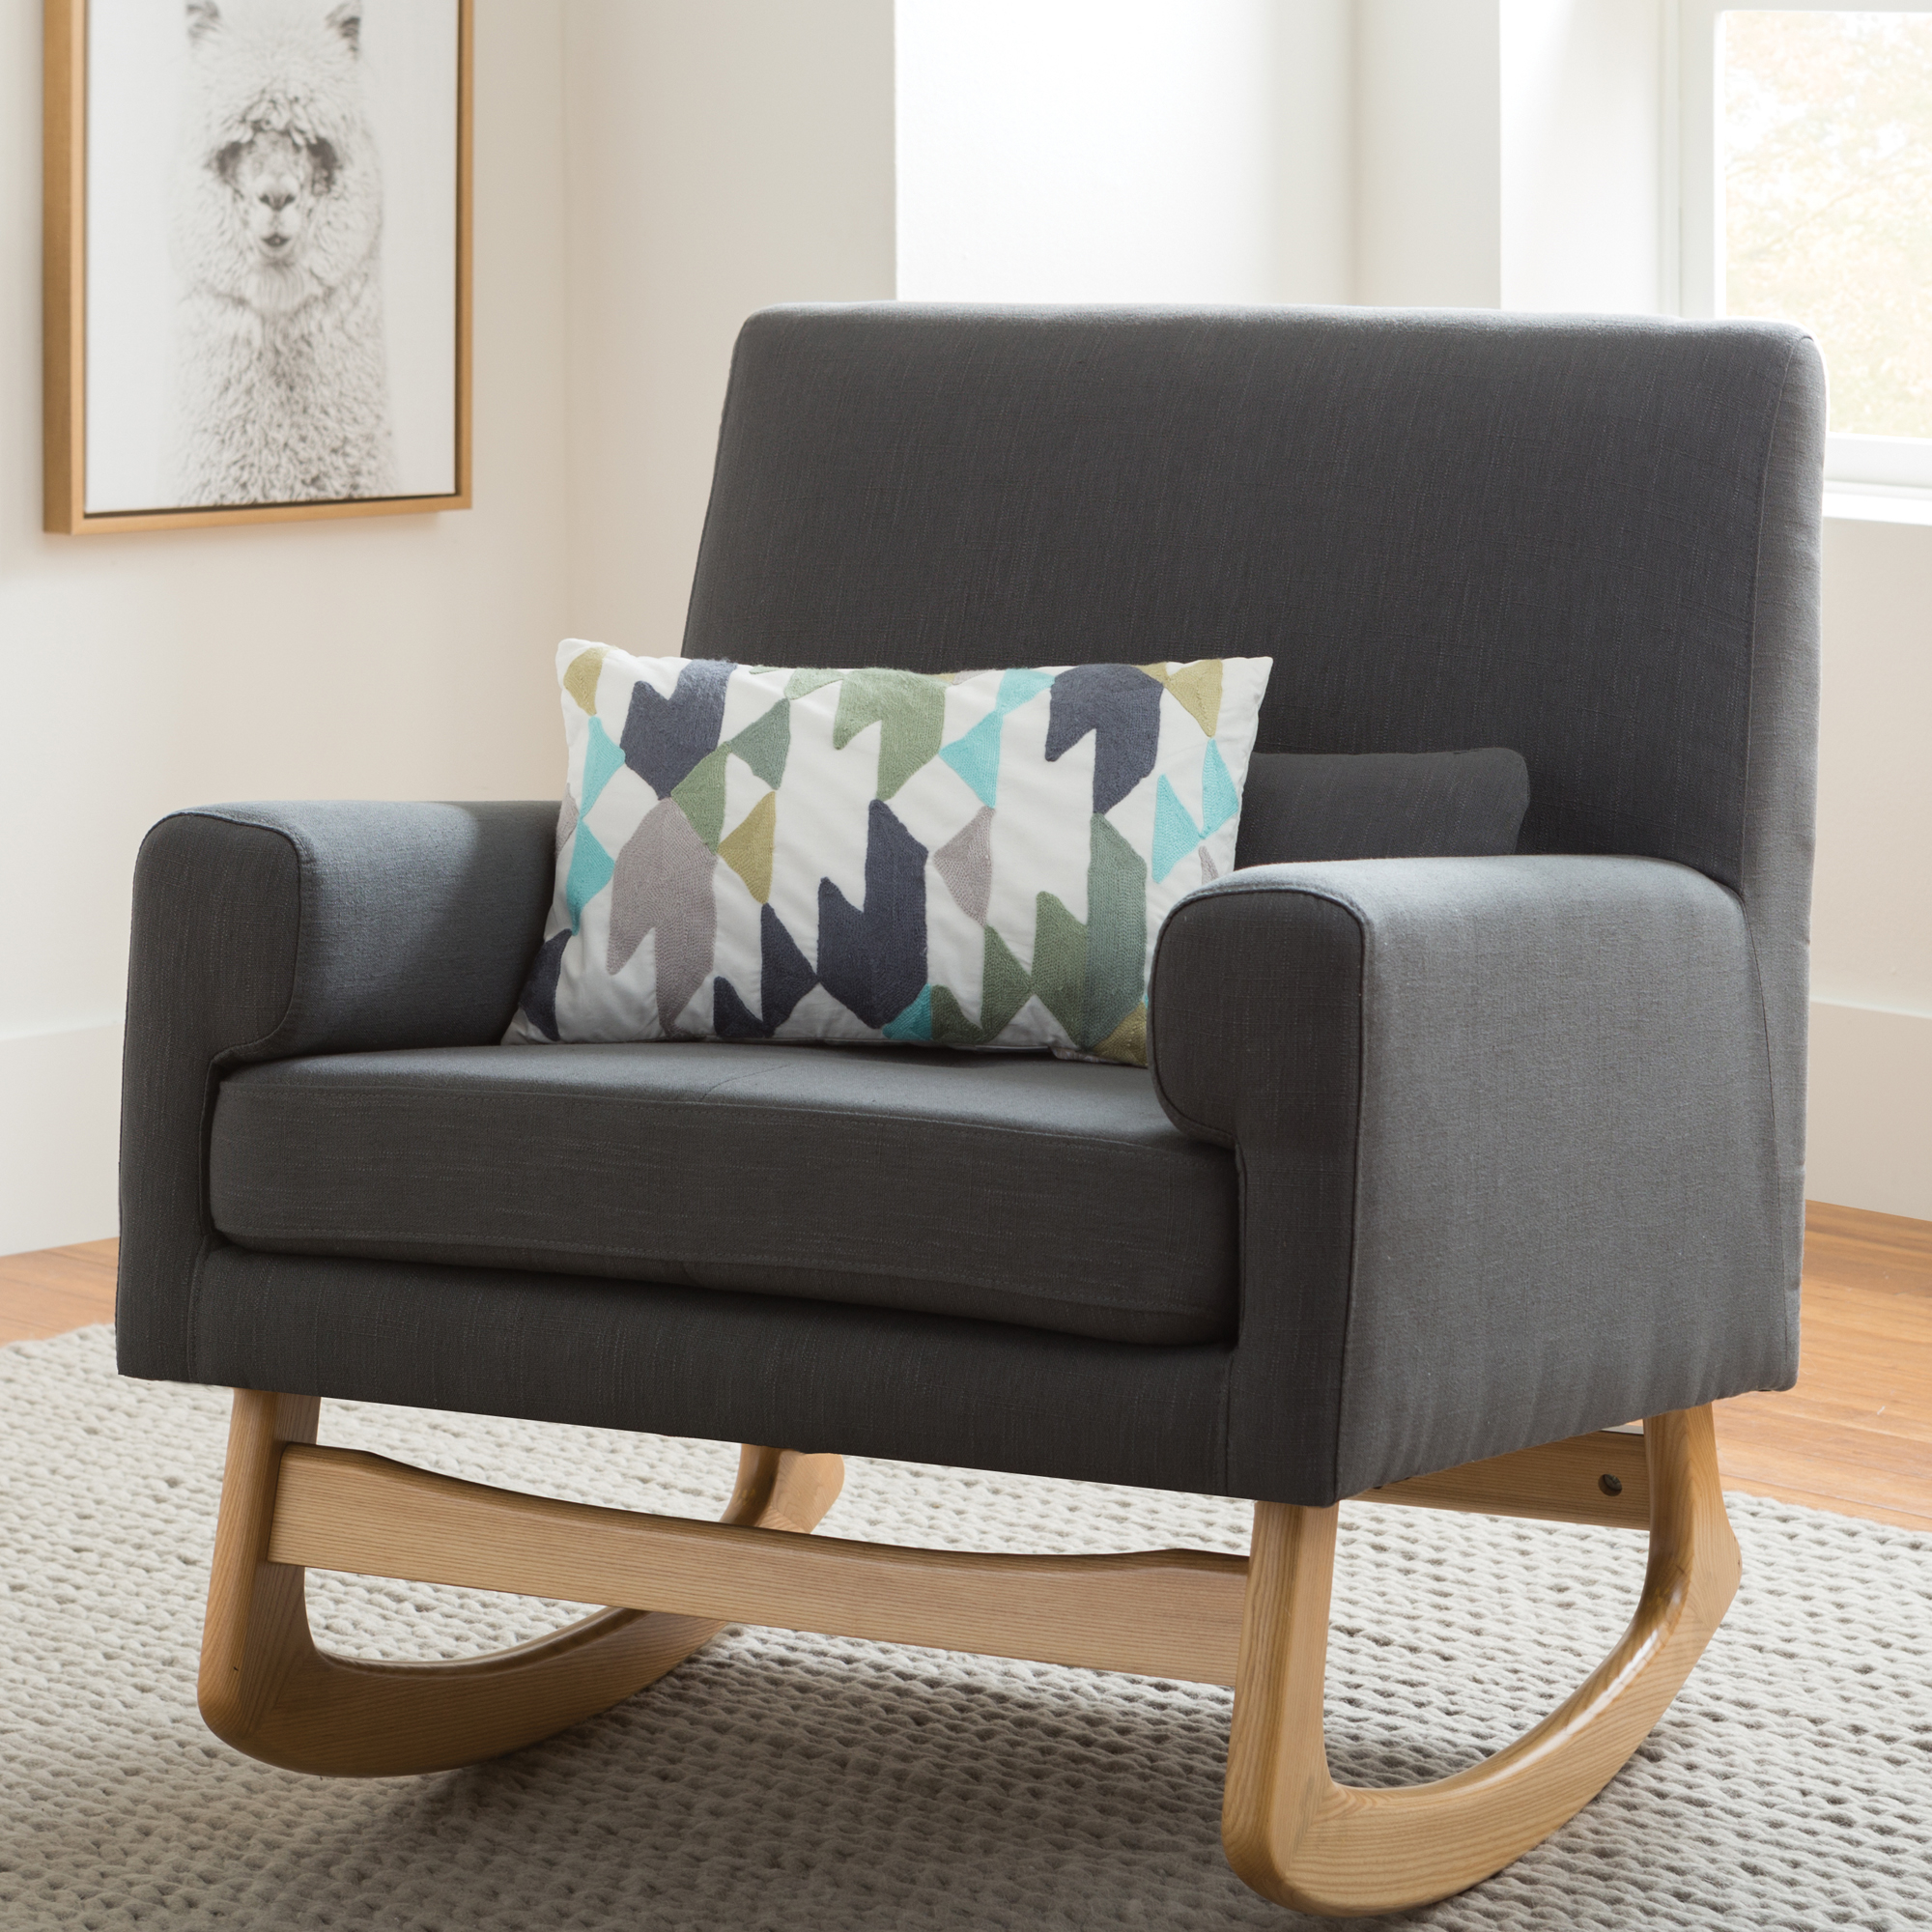 Inspiration about Modern Gliders + Rocking Chairs | Allmodern Inside Rocking Chairs In Linen Fabric With Brushed Finish Base (#14 of 20)